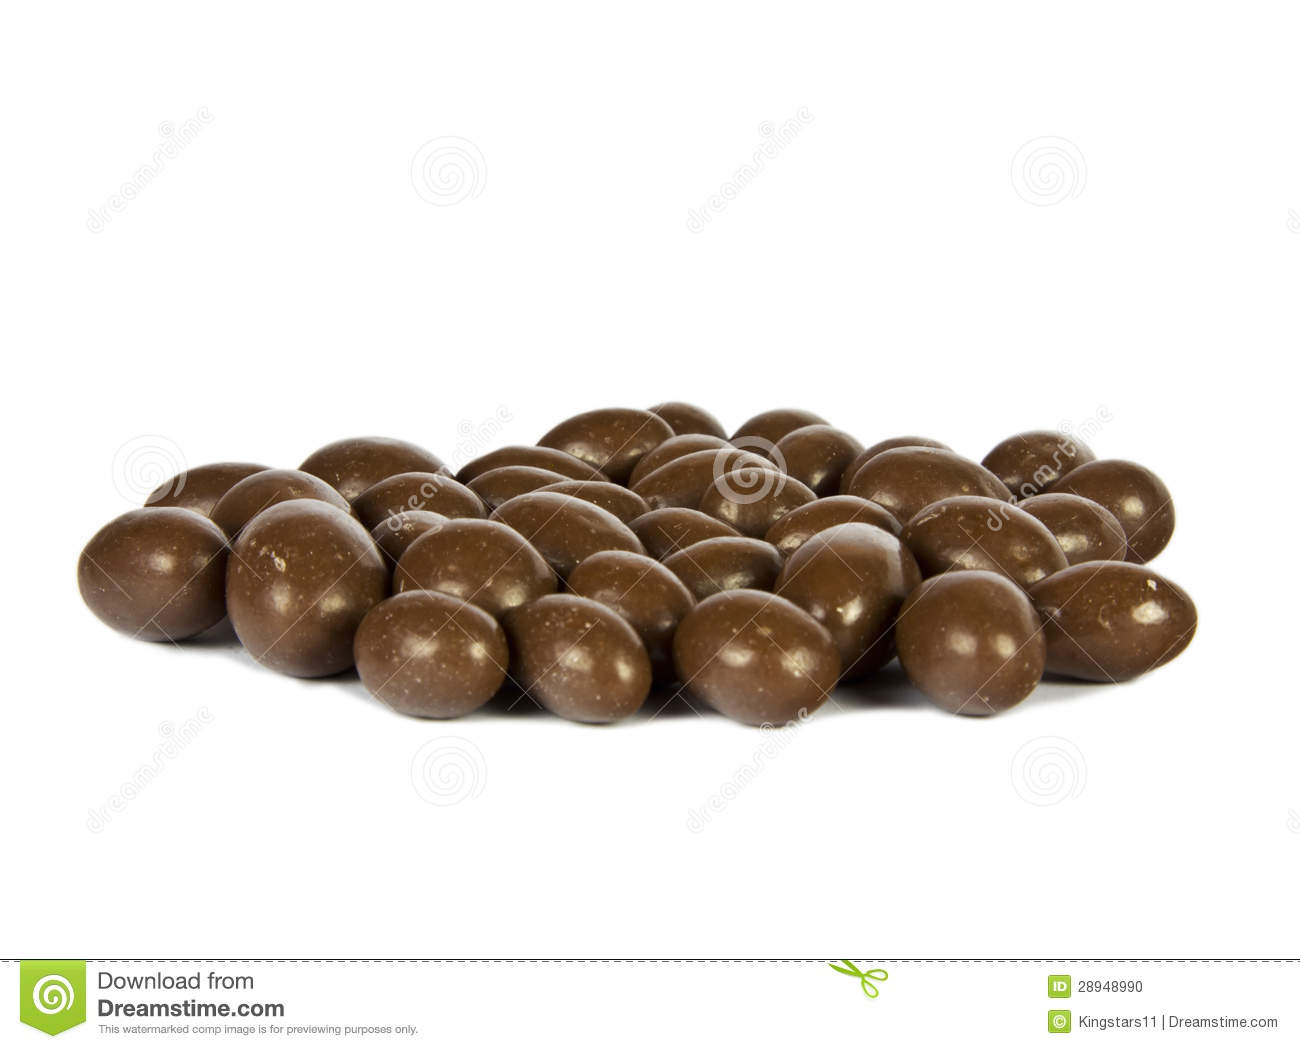 CHOCOLATE-COVERED PEANUTS Stock Photo - Image: 28948990